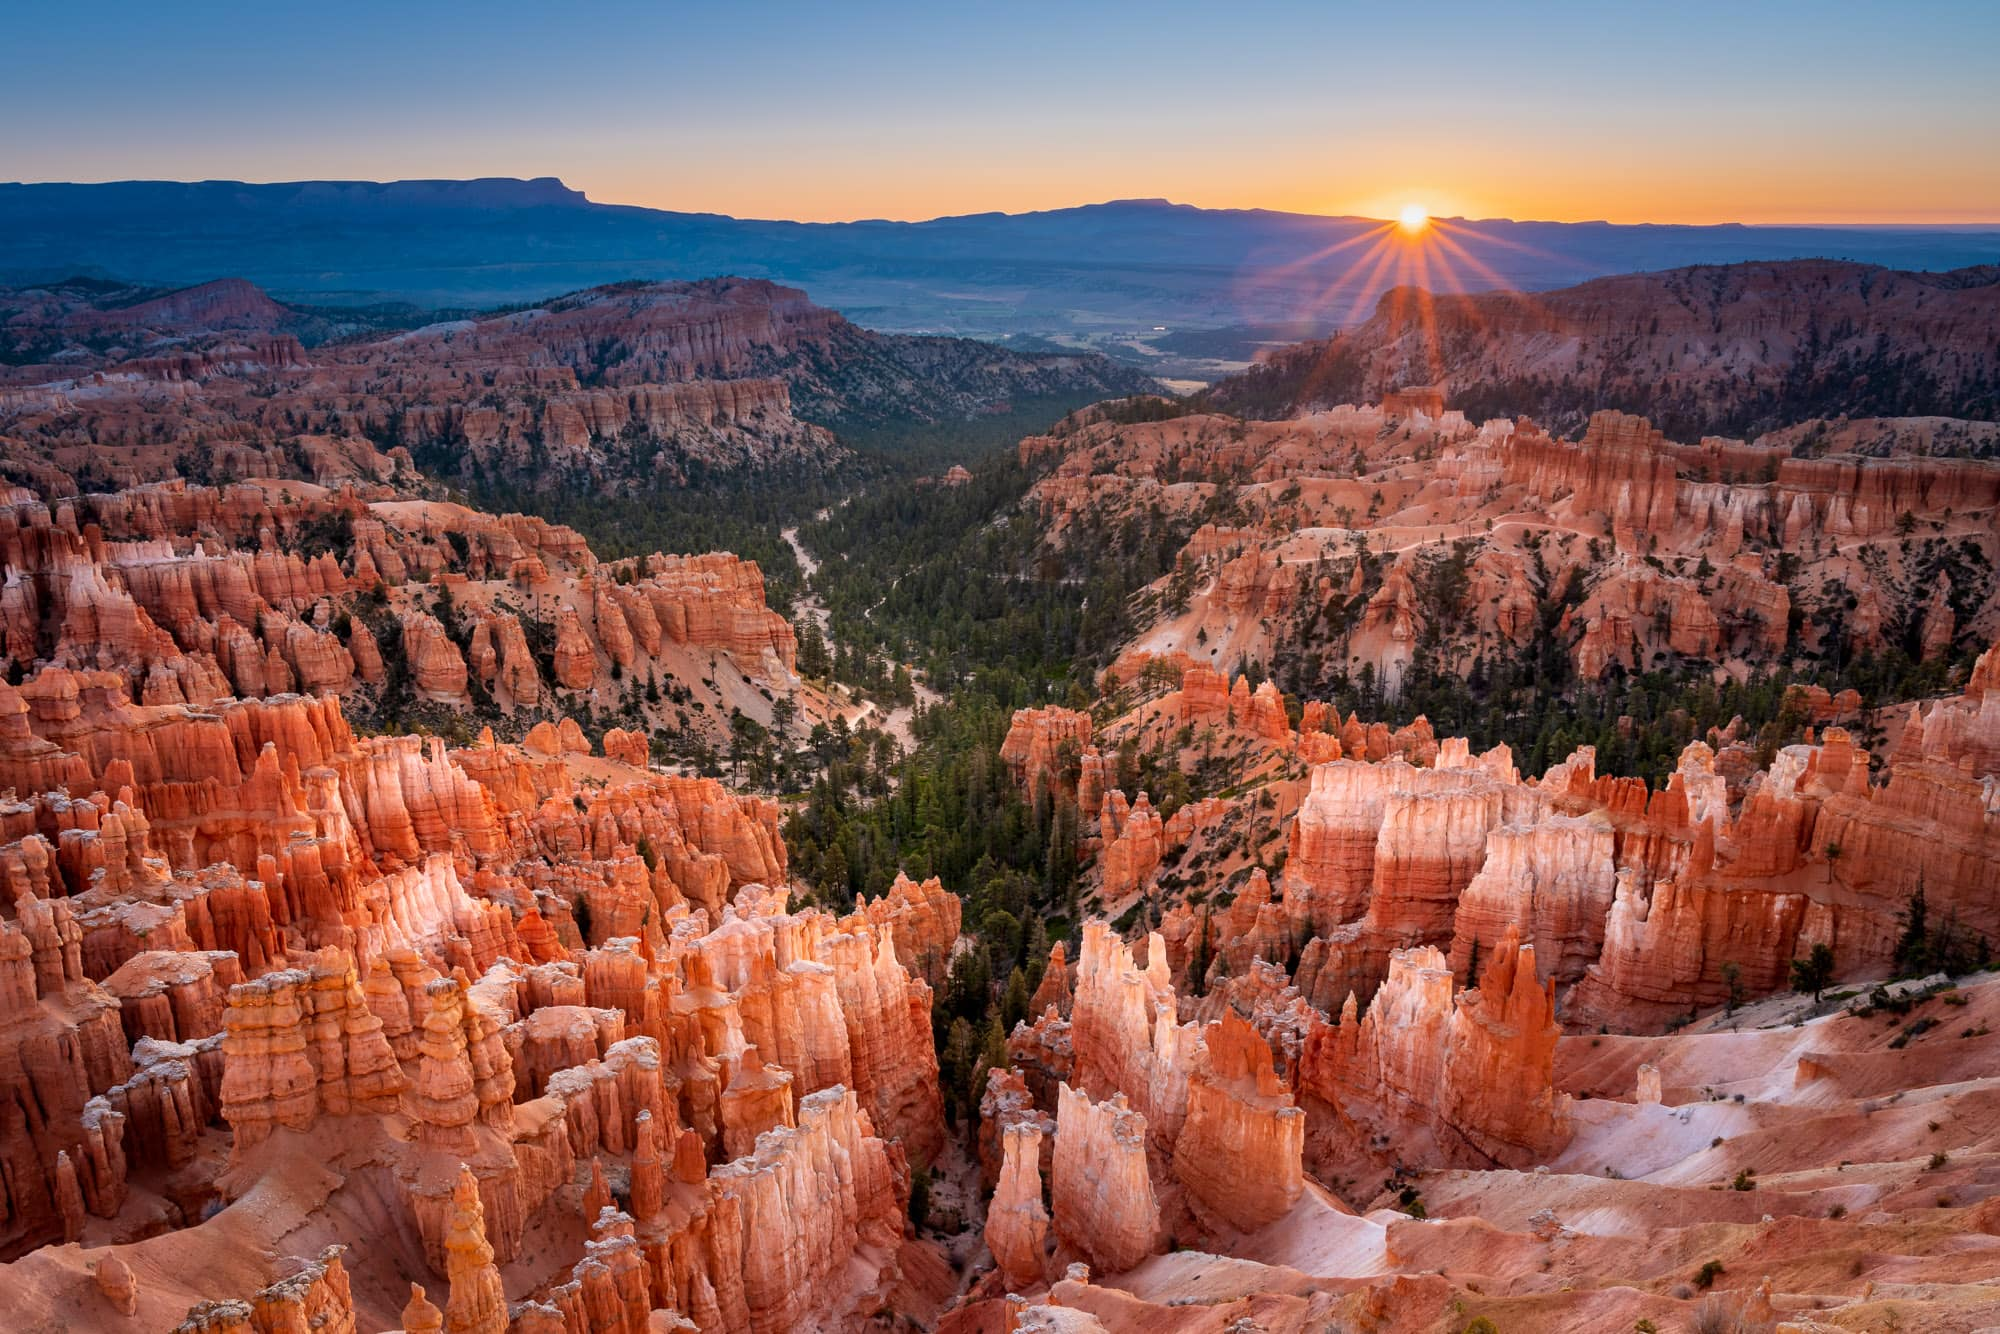 Inspiration Point at sunrise, Bryce Canyon National Park